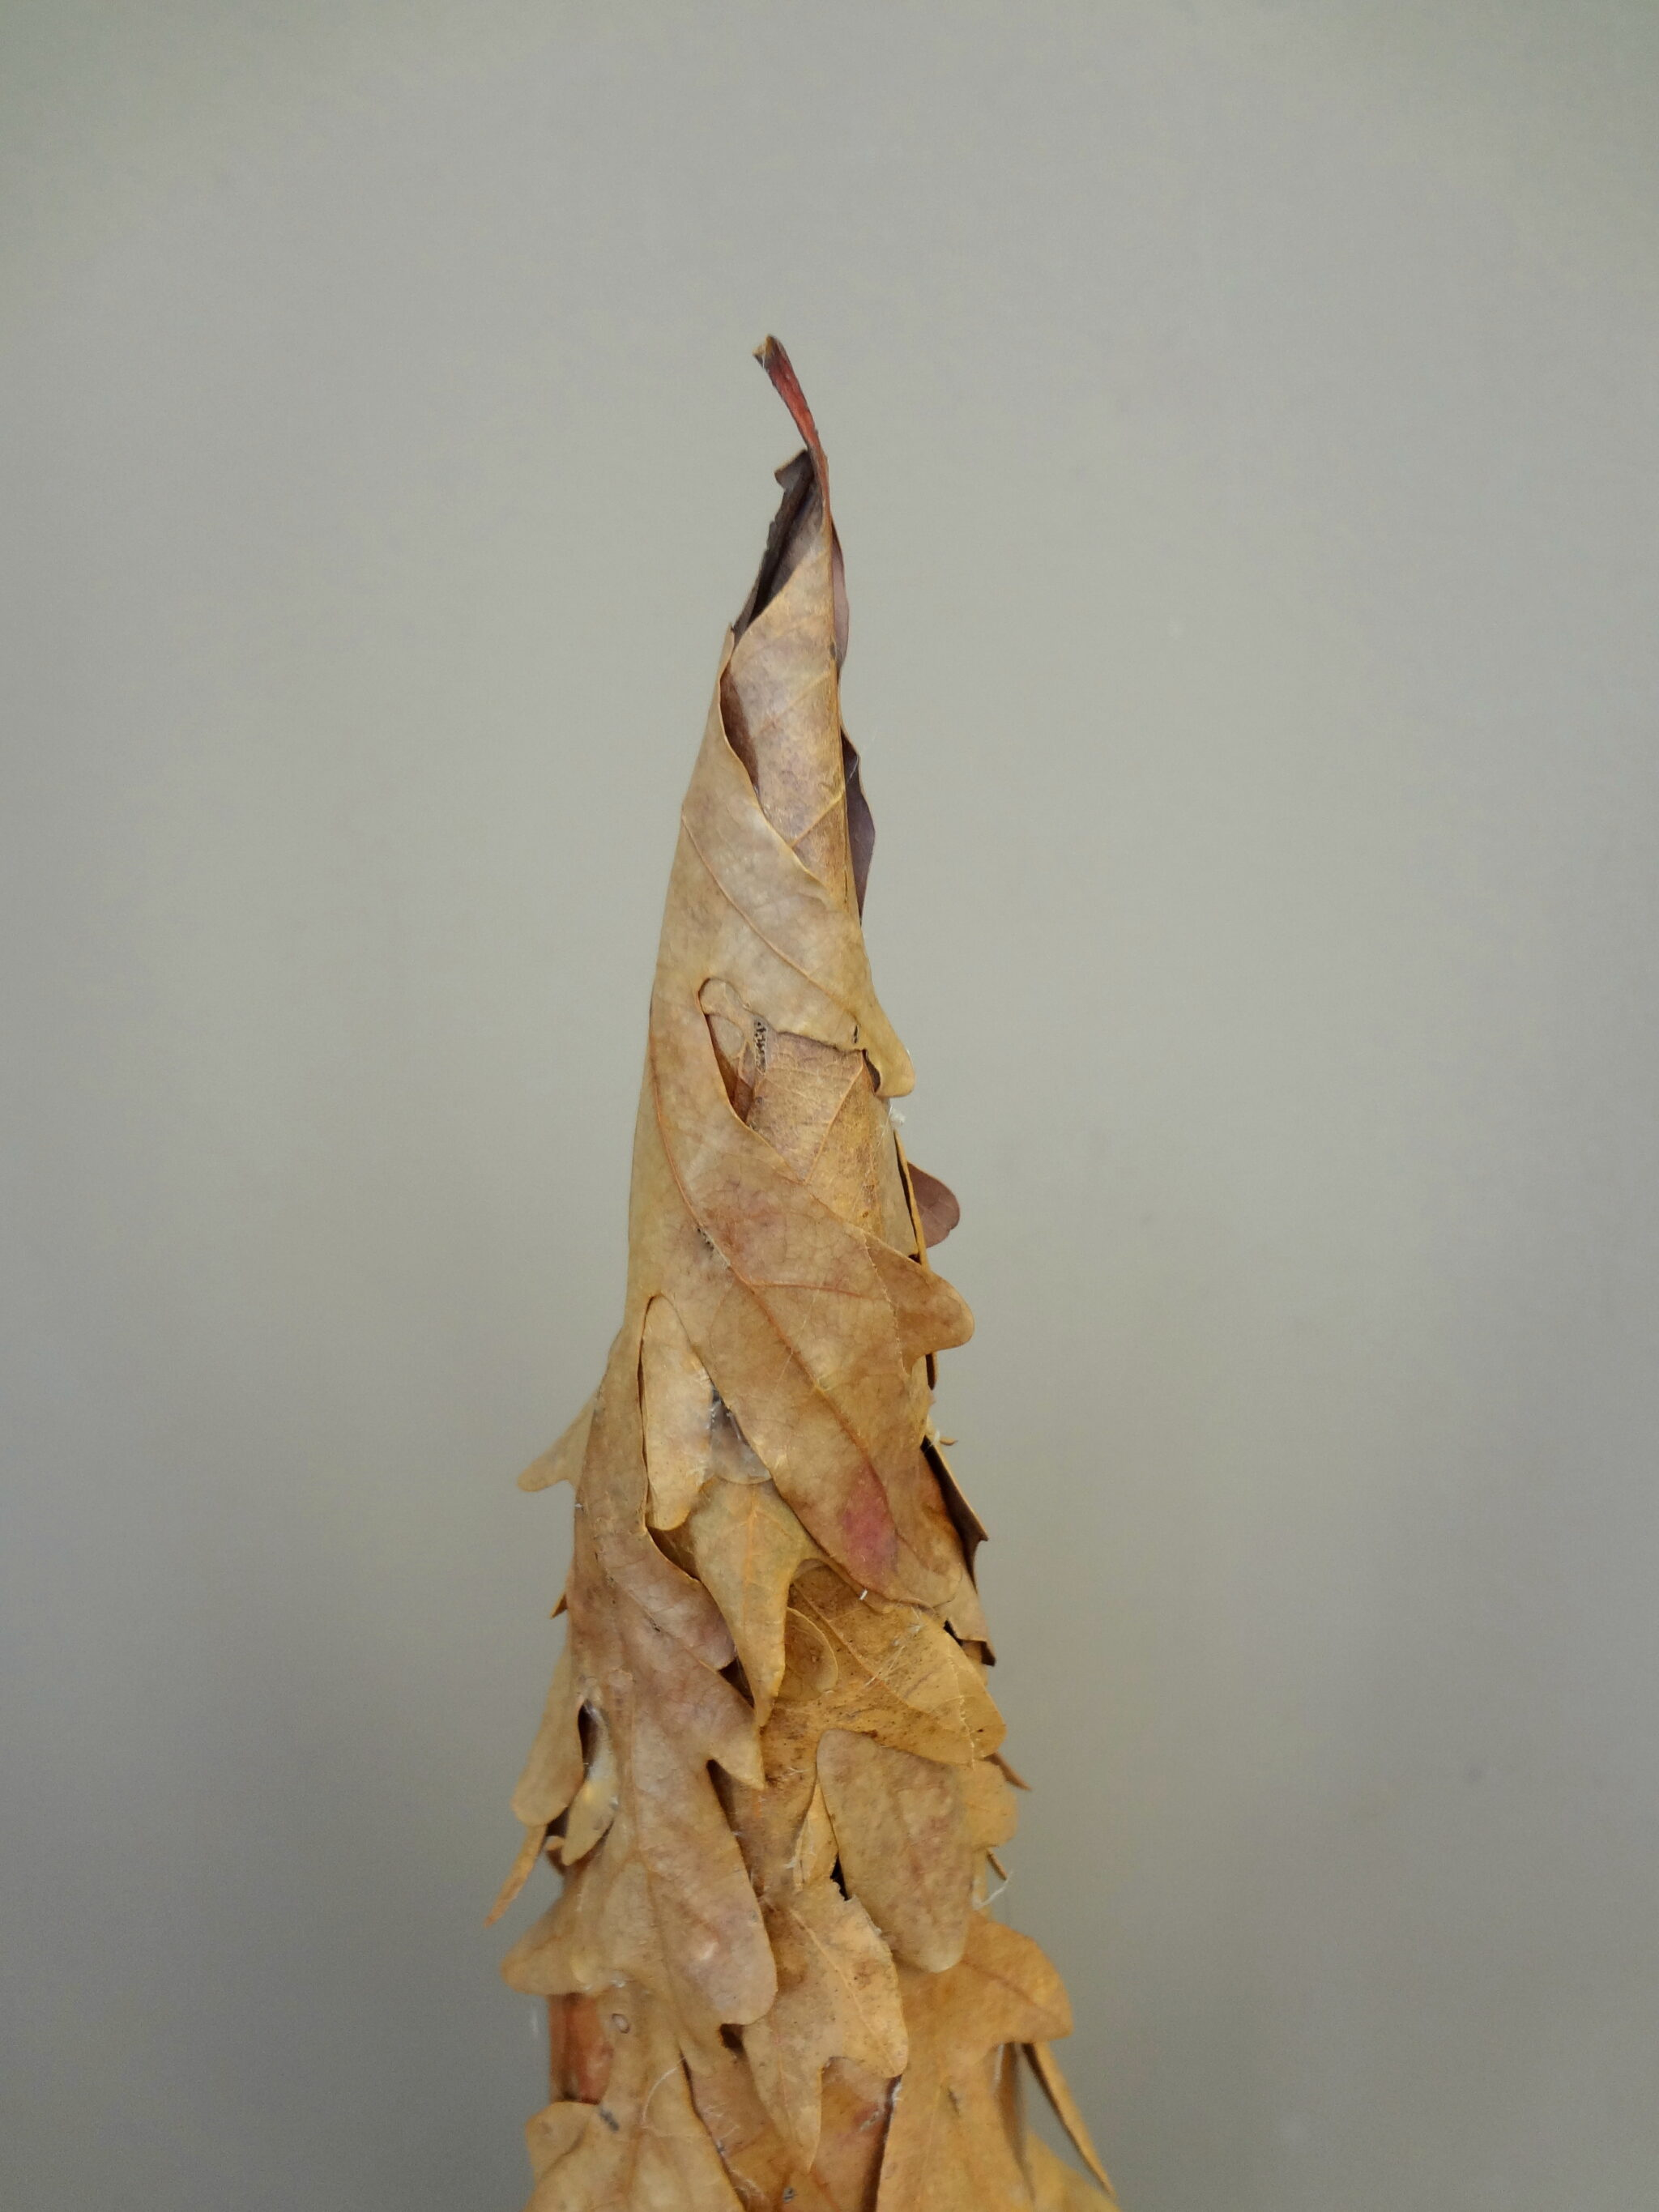 wrap small leaves around top and glue